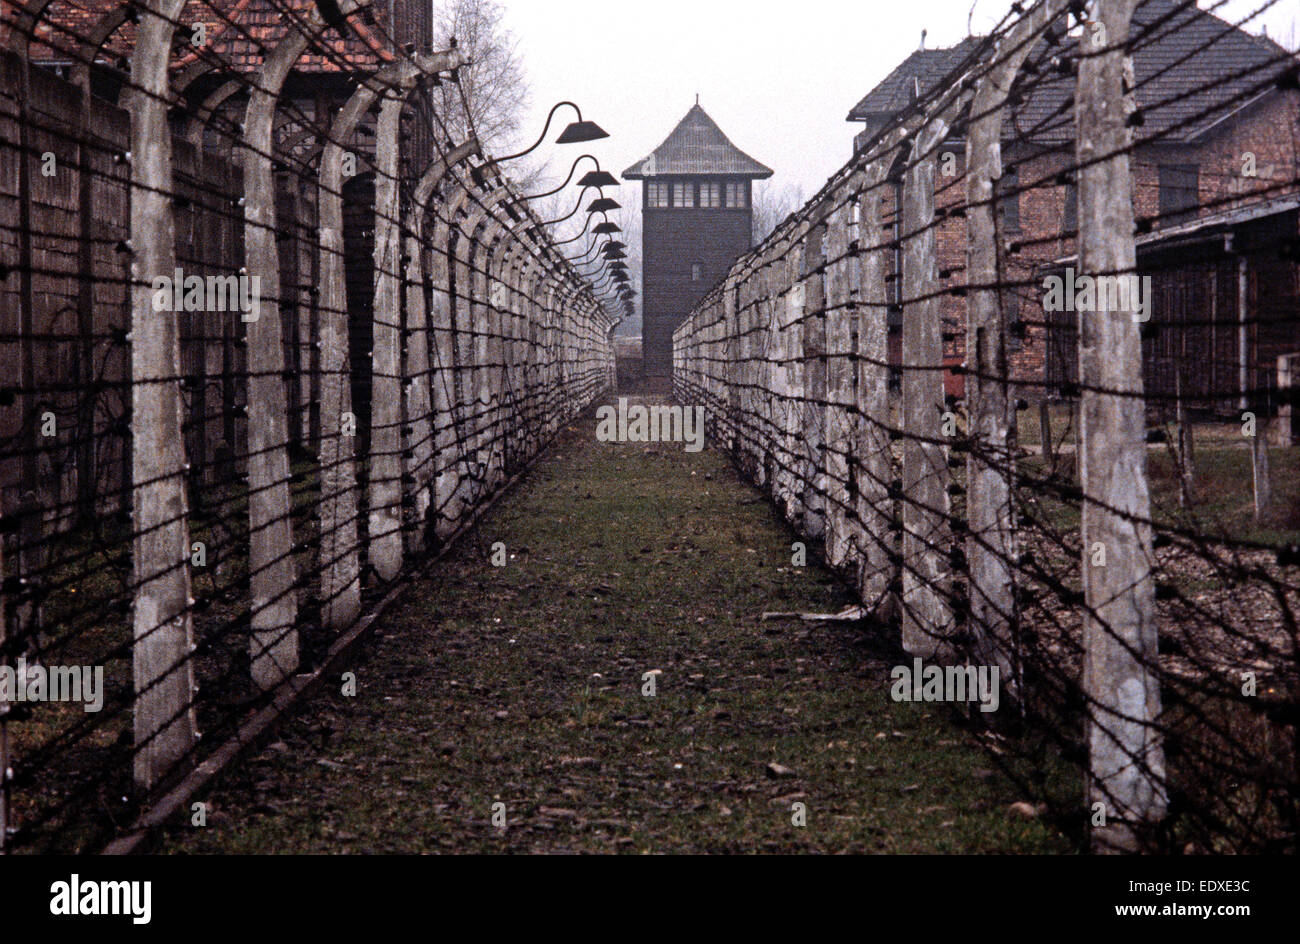 Pin em The Holocaust-My haunting Memory After Visiting ... |Concentration Camps Buildings